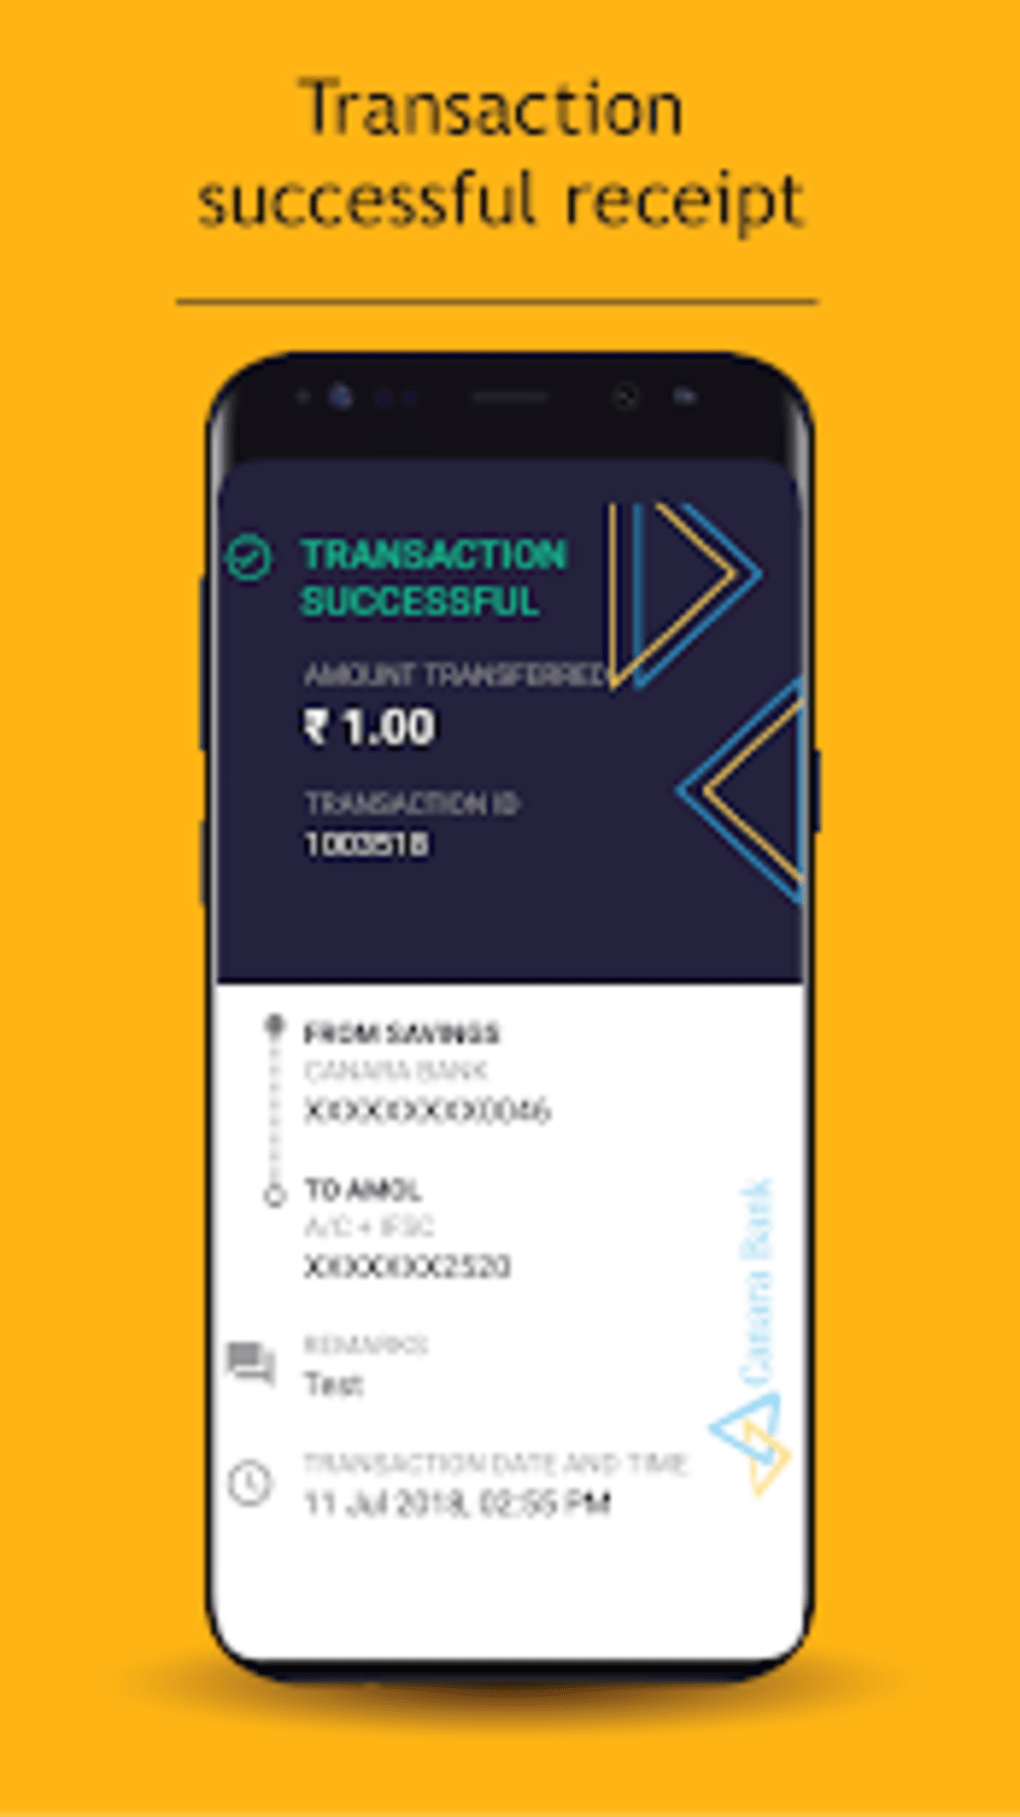 sbi app android download